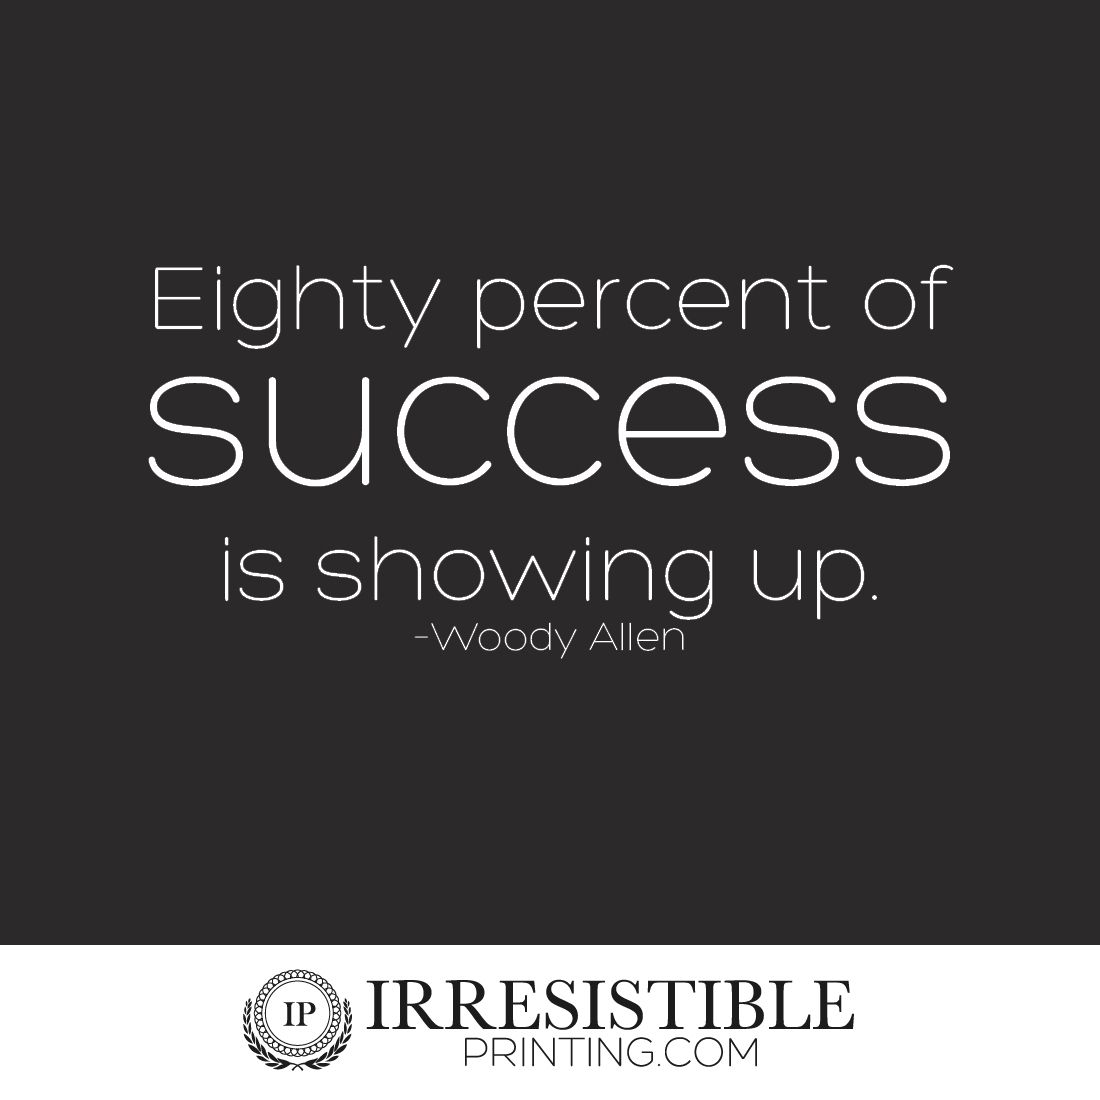 80 Of Success Is Showing Up Woody Alan Success Results